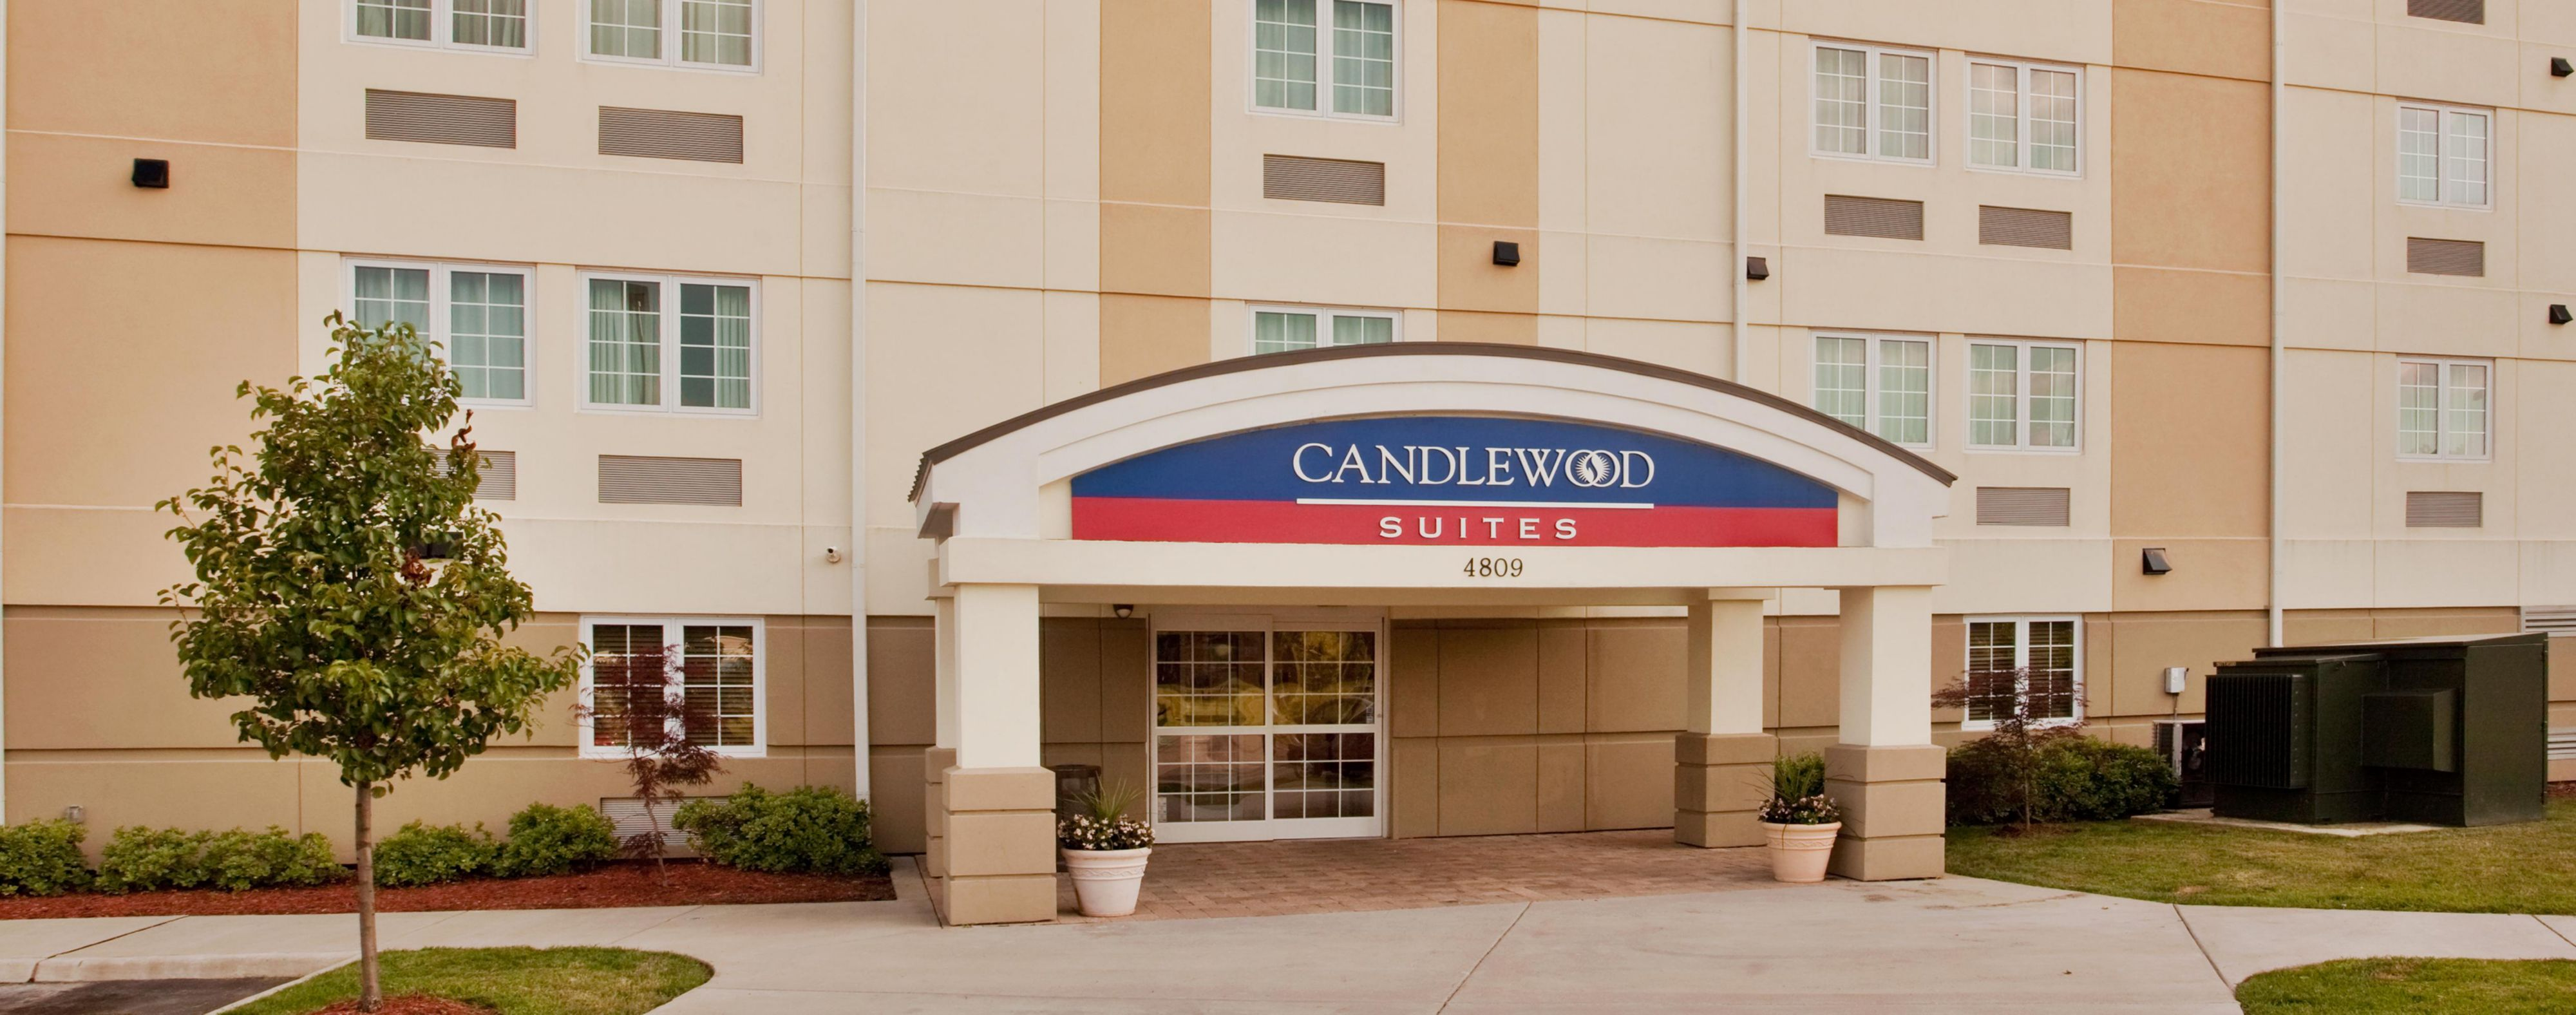 Candlewood Suites Chesapeake Suffolk